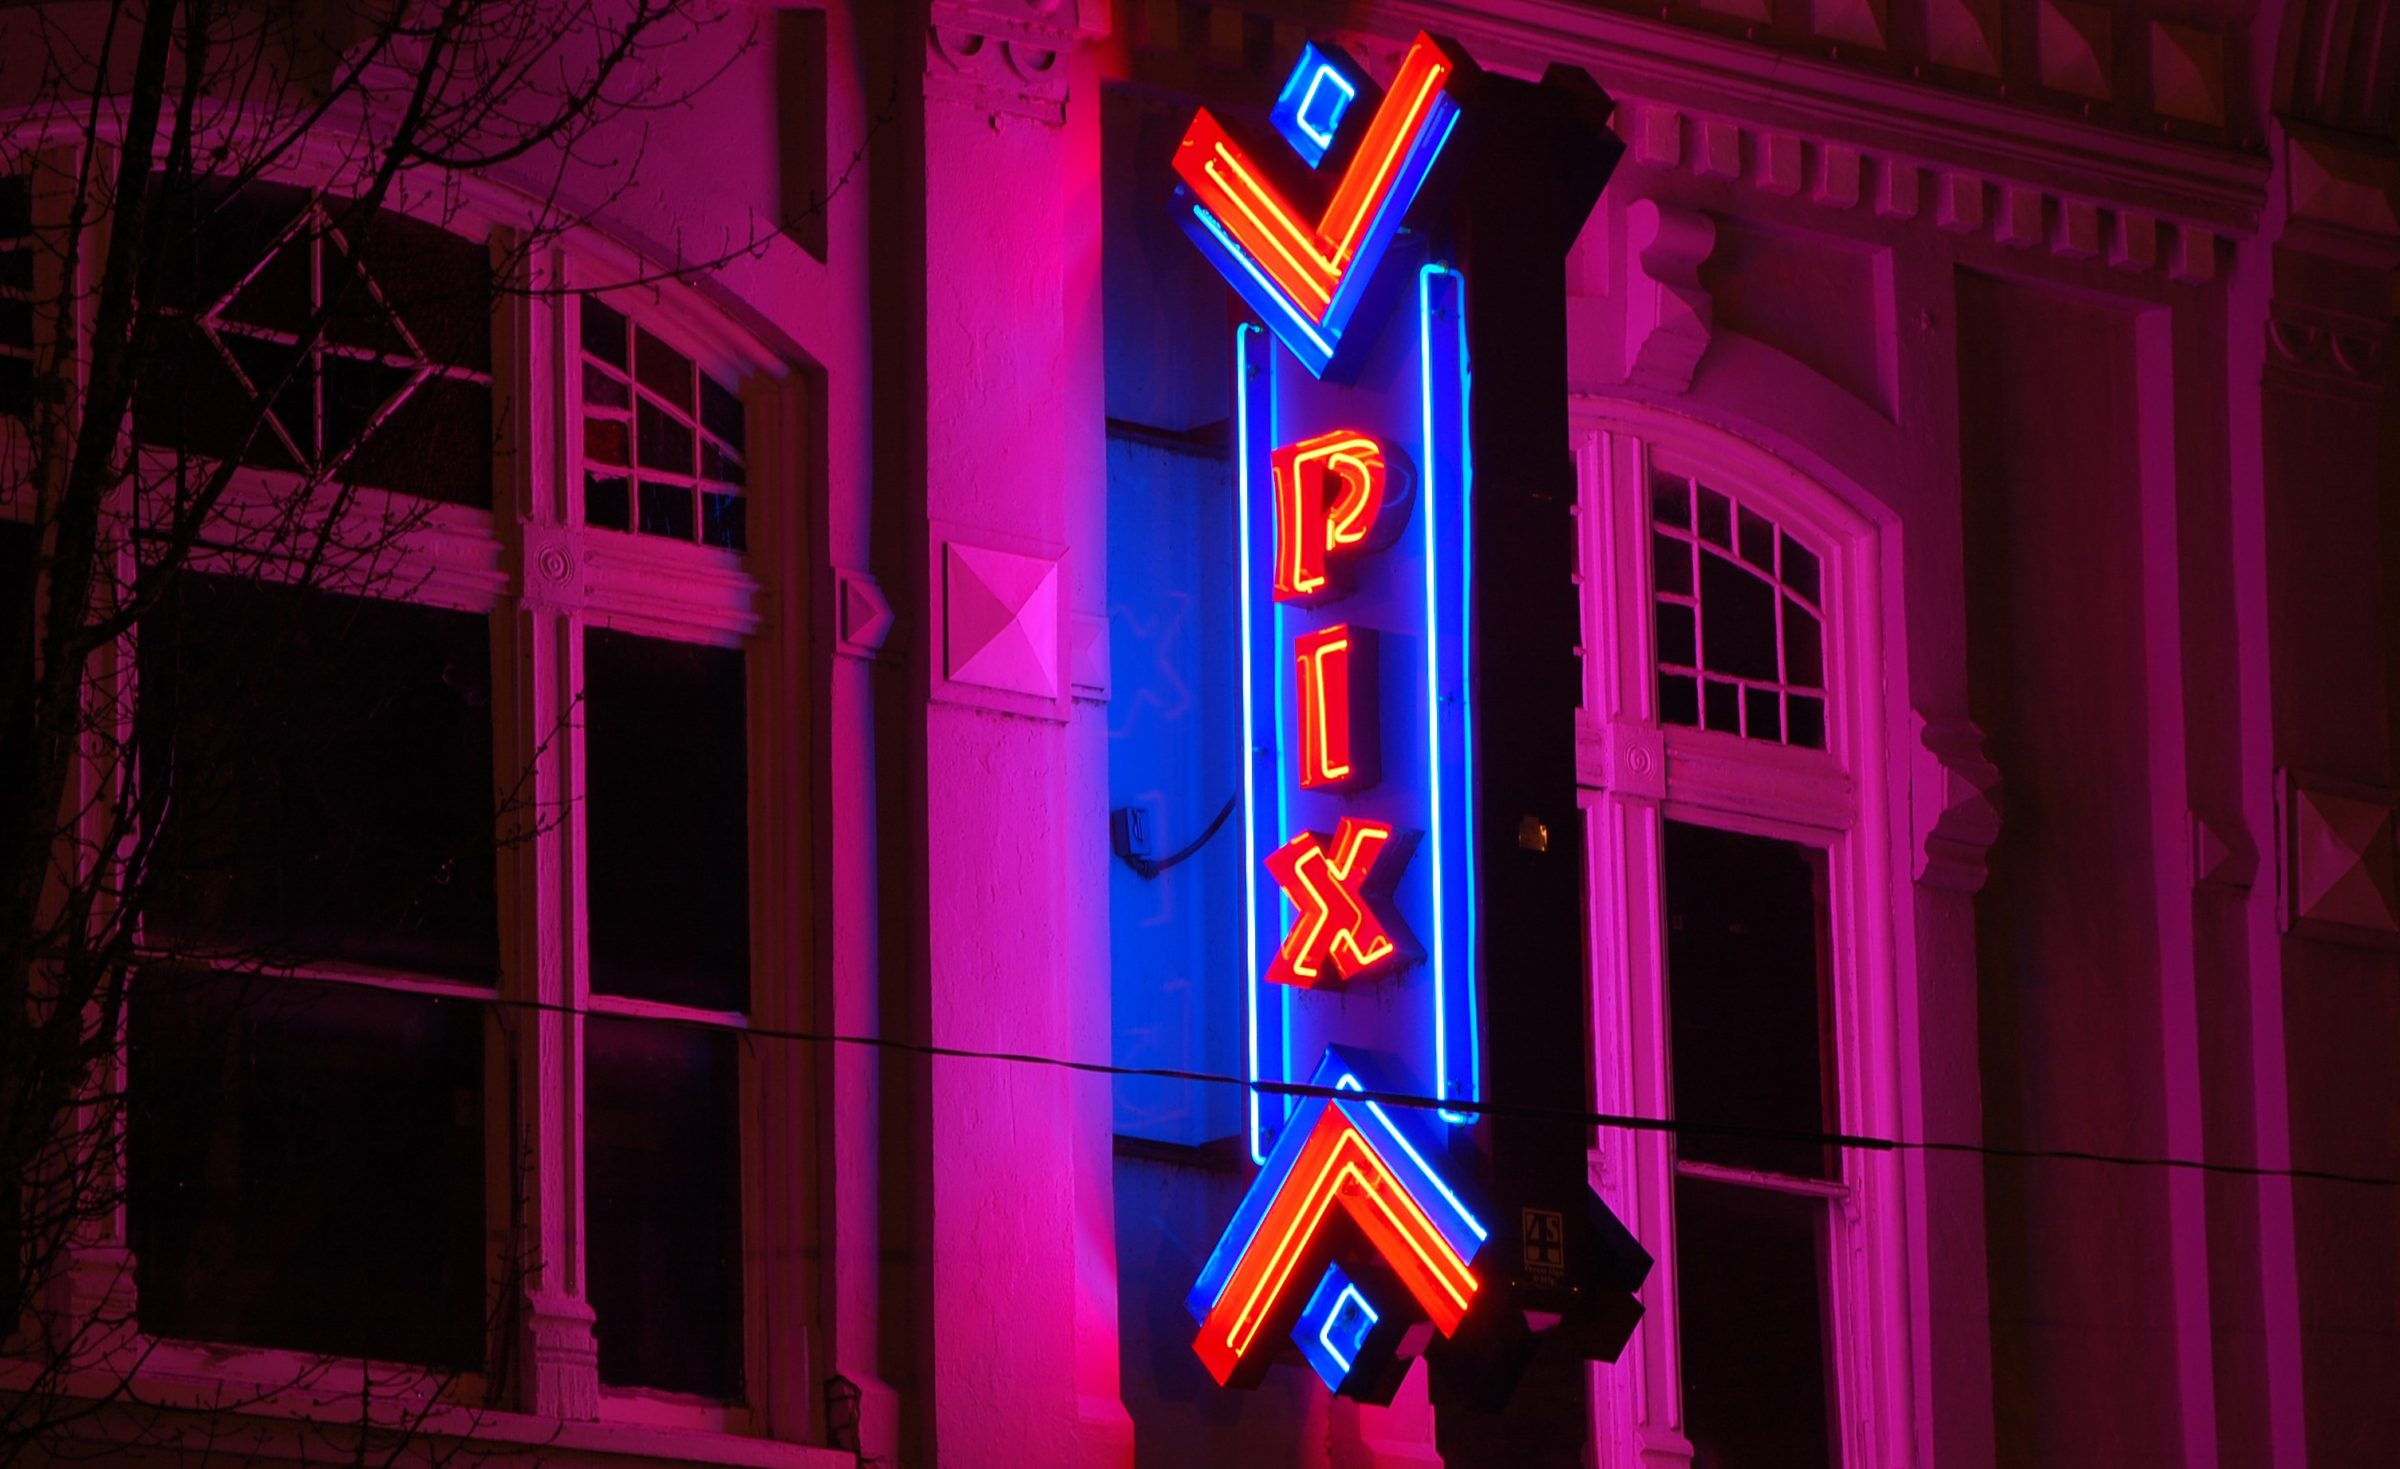 Photo of Pix Theater pink and purple neon light sign.